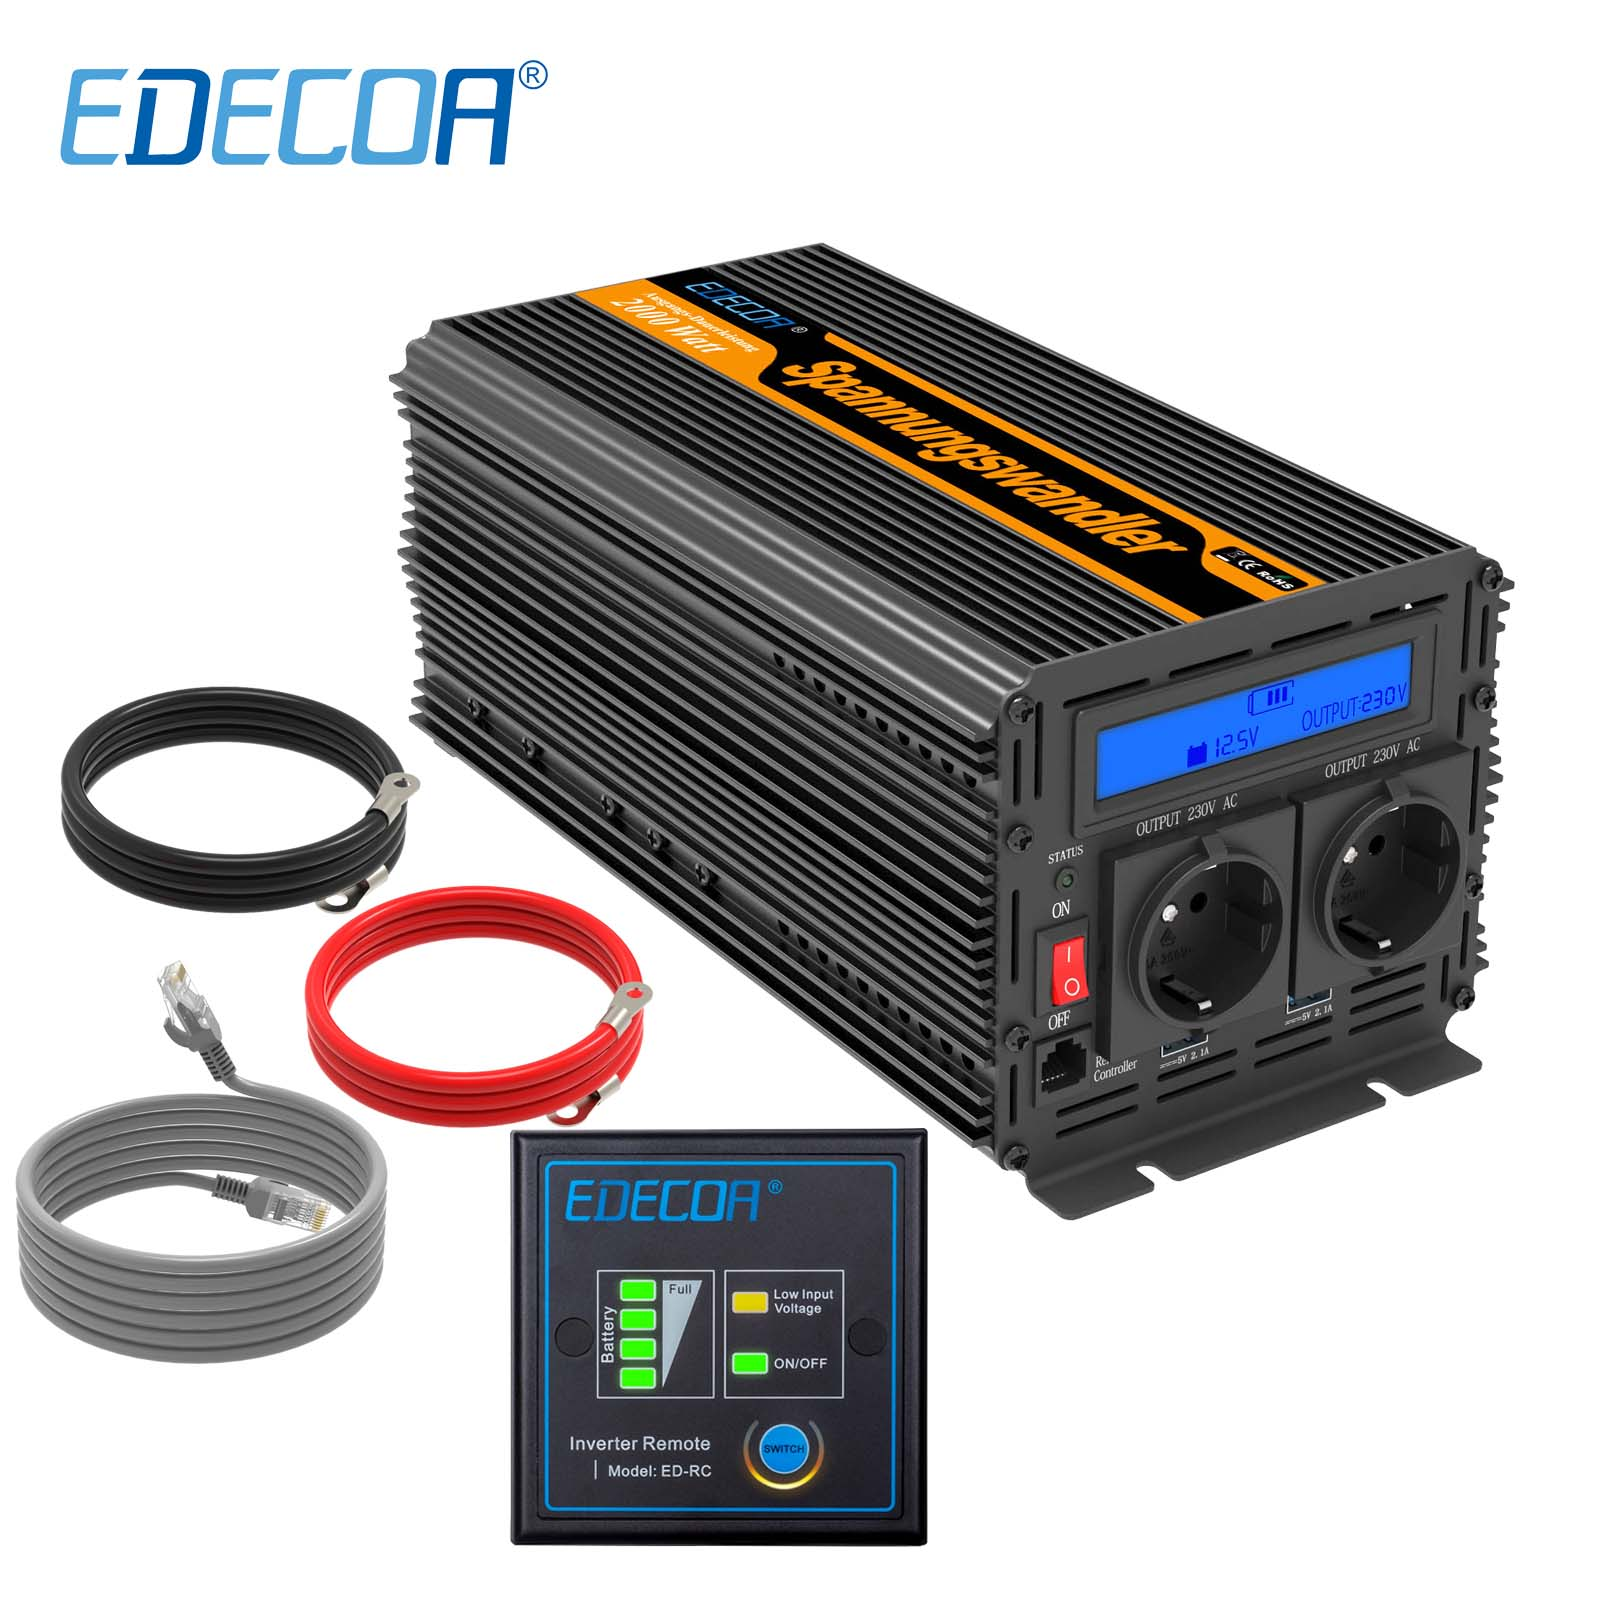 EDECOA power inverter 2000W 4000W modified sine wave DC 12V AC 220V 230V with remote controller and 5V 2.1A USB LCD display